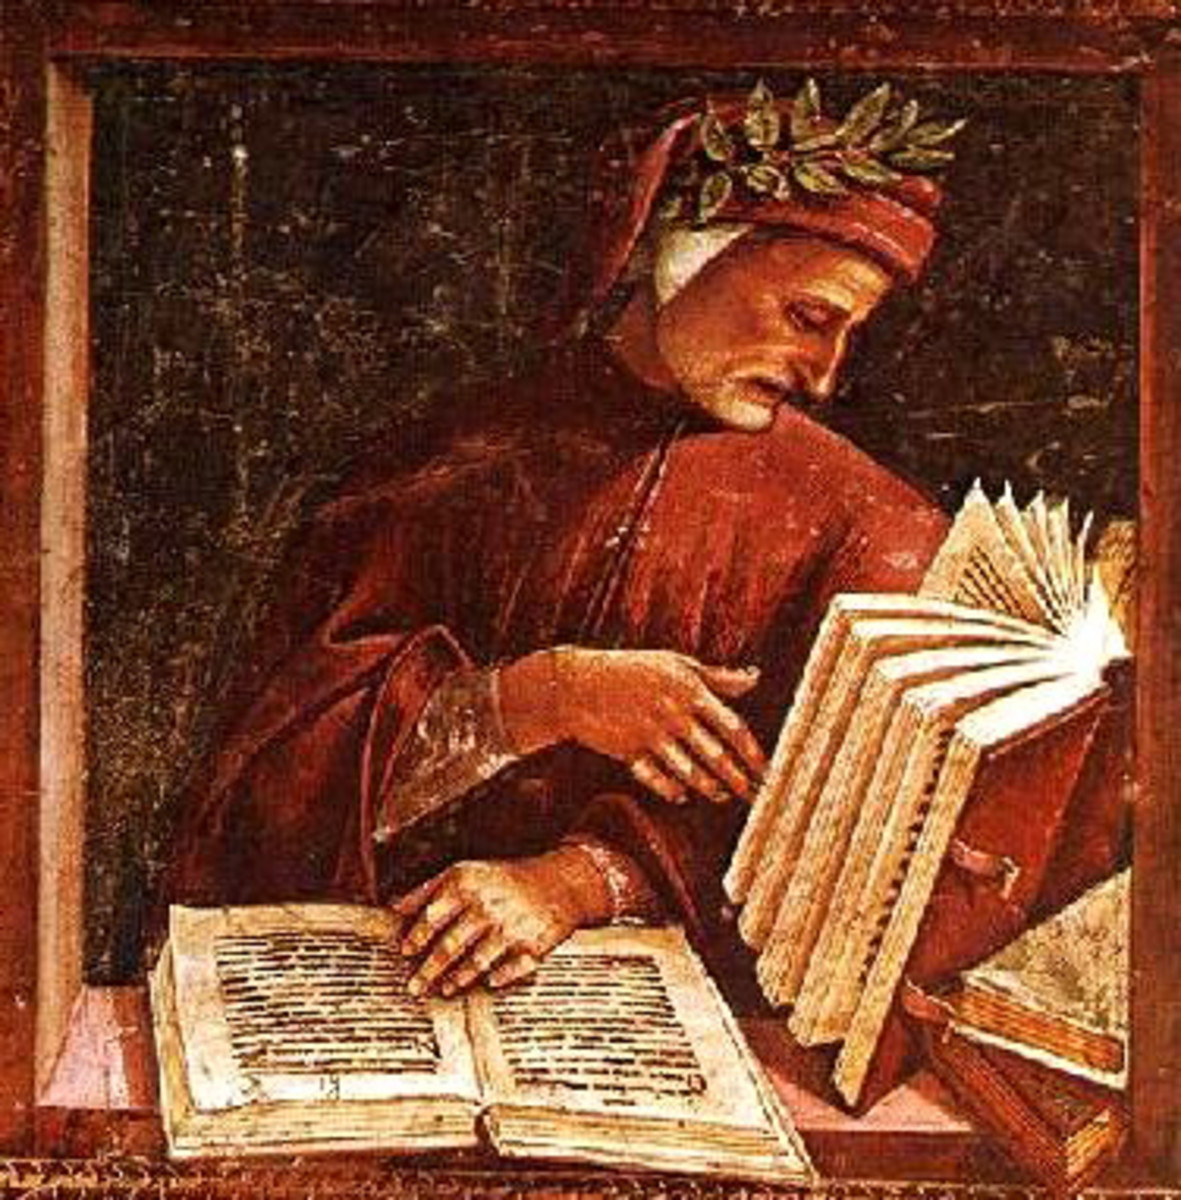 an analysis of the divine comedy by dante alighieri View homework help - summary - dante alighieri's the divine comedy - inferno from theo 20205 at university of notre dame summary - dante alighieri's the divine comedy - inferno in dante alighieri's.